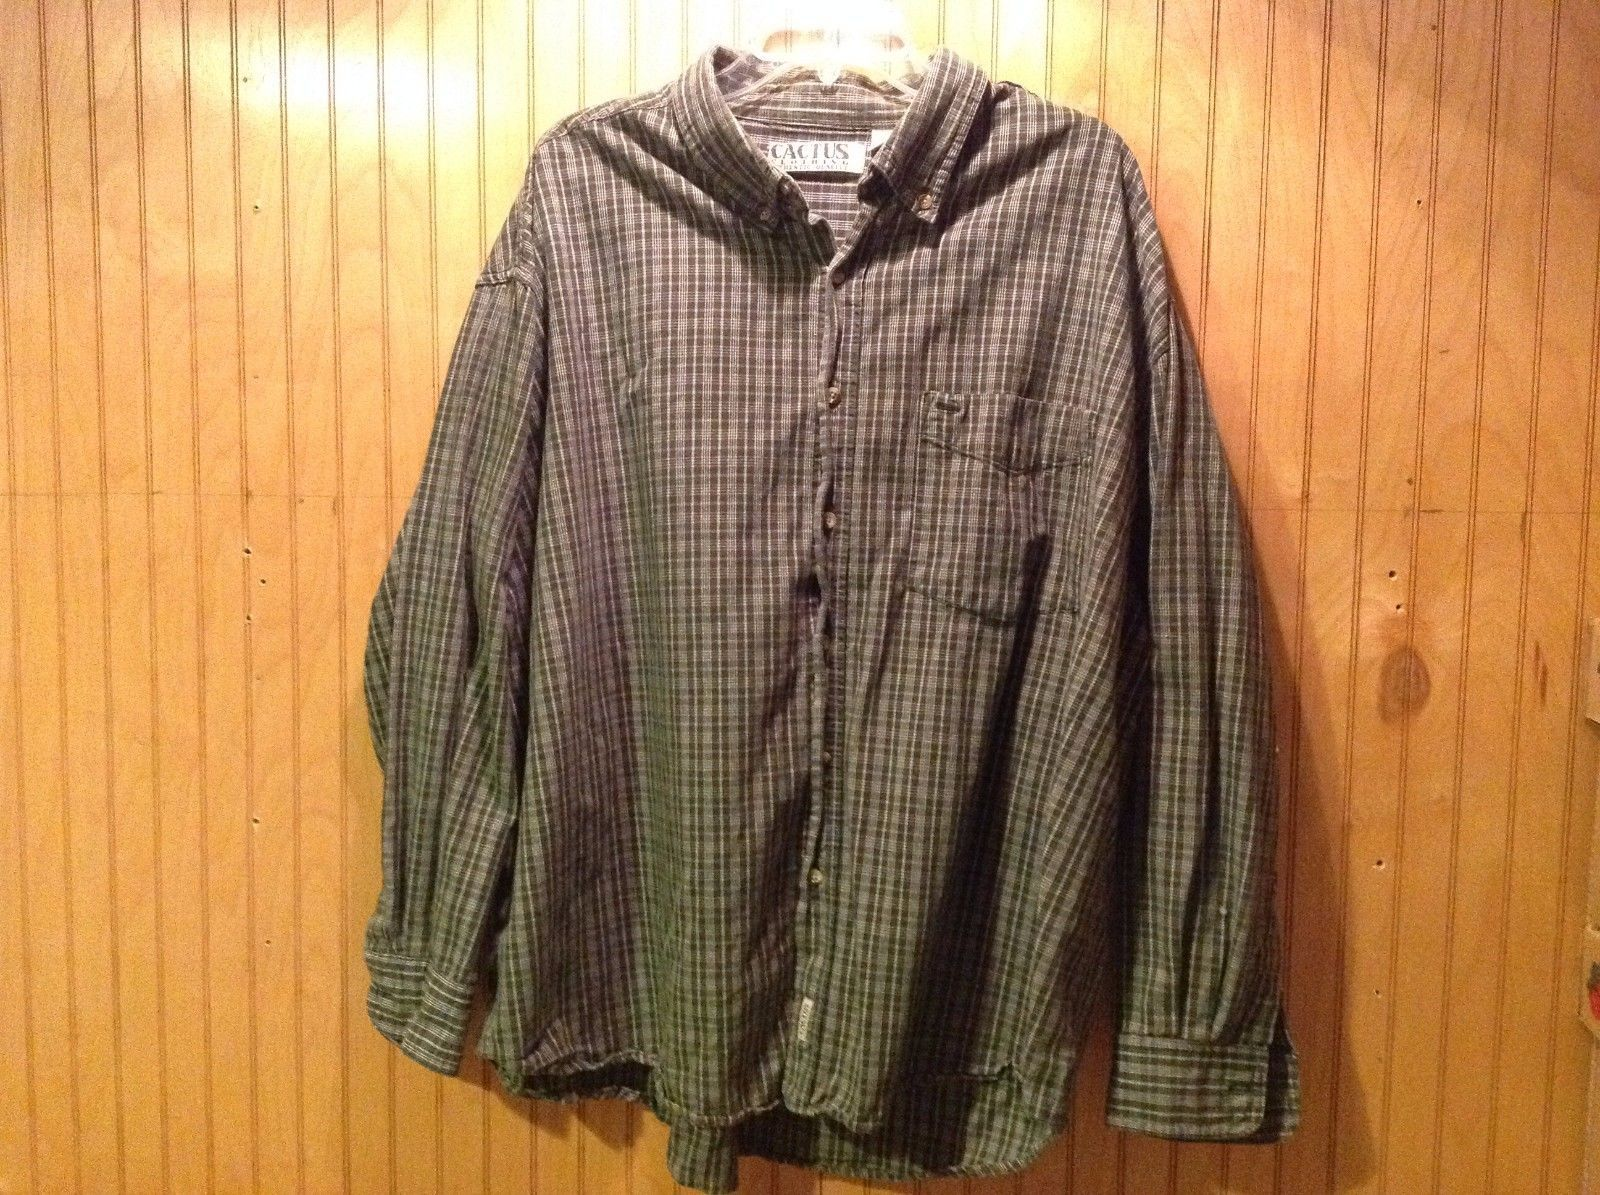 Cactus Clothing Authentic Quality Long Sleeve Shirt 2XL Cotton Plaid Green